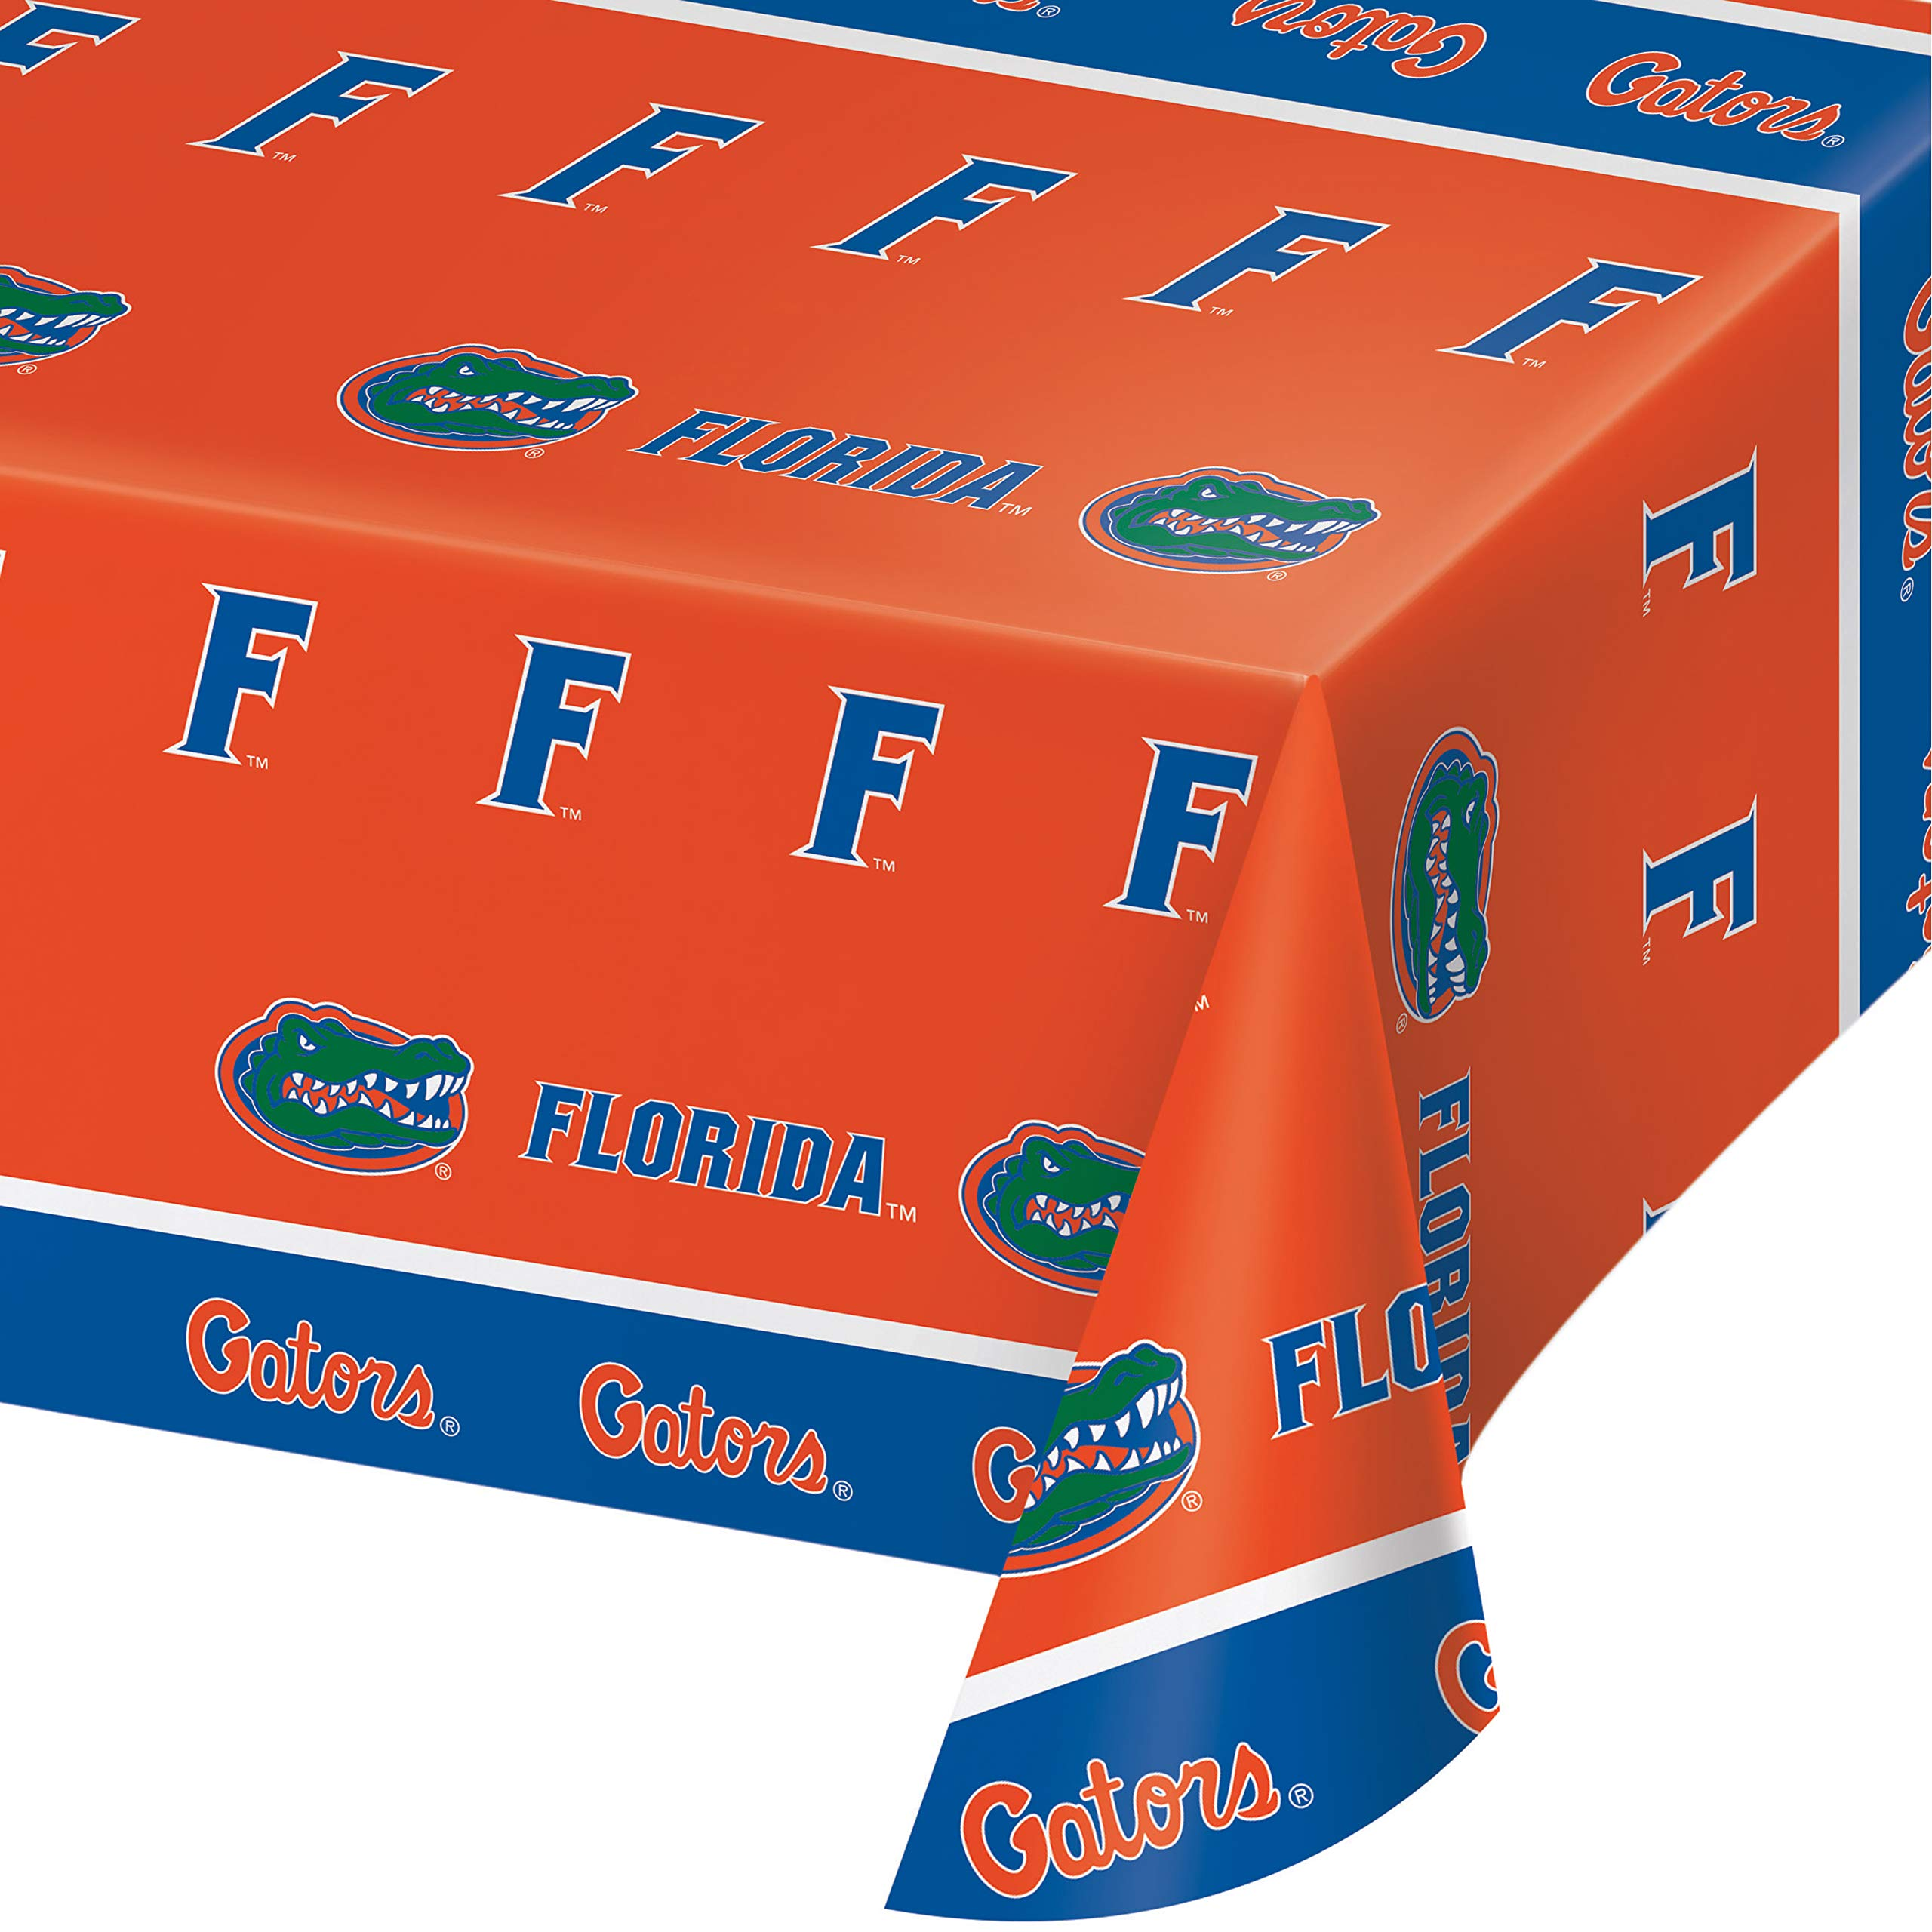 University of Florida Plastic Tablecloths, 3 ct by Creative Converting